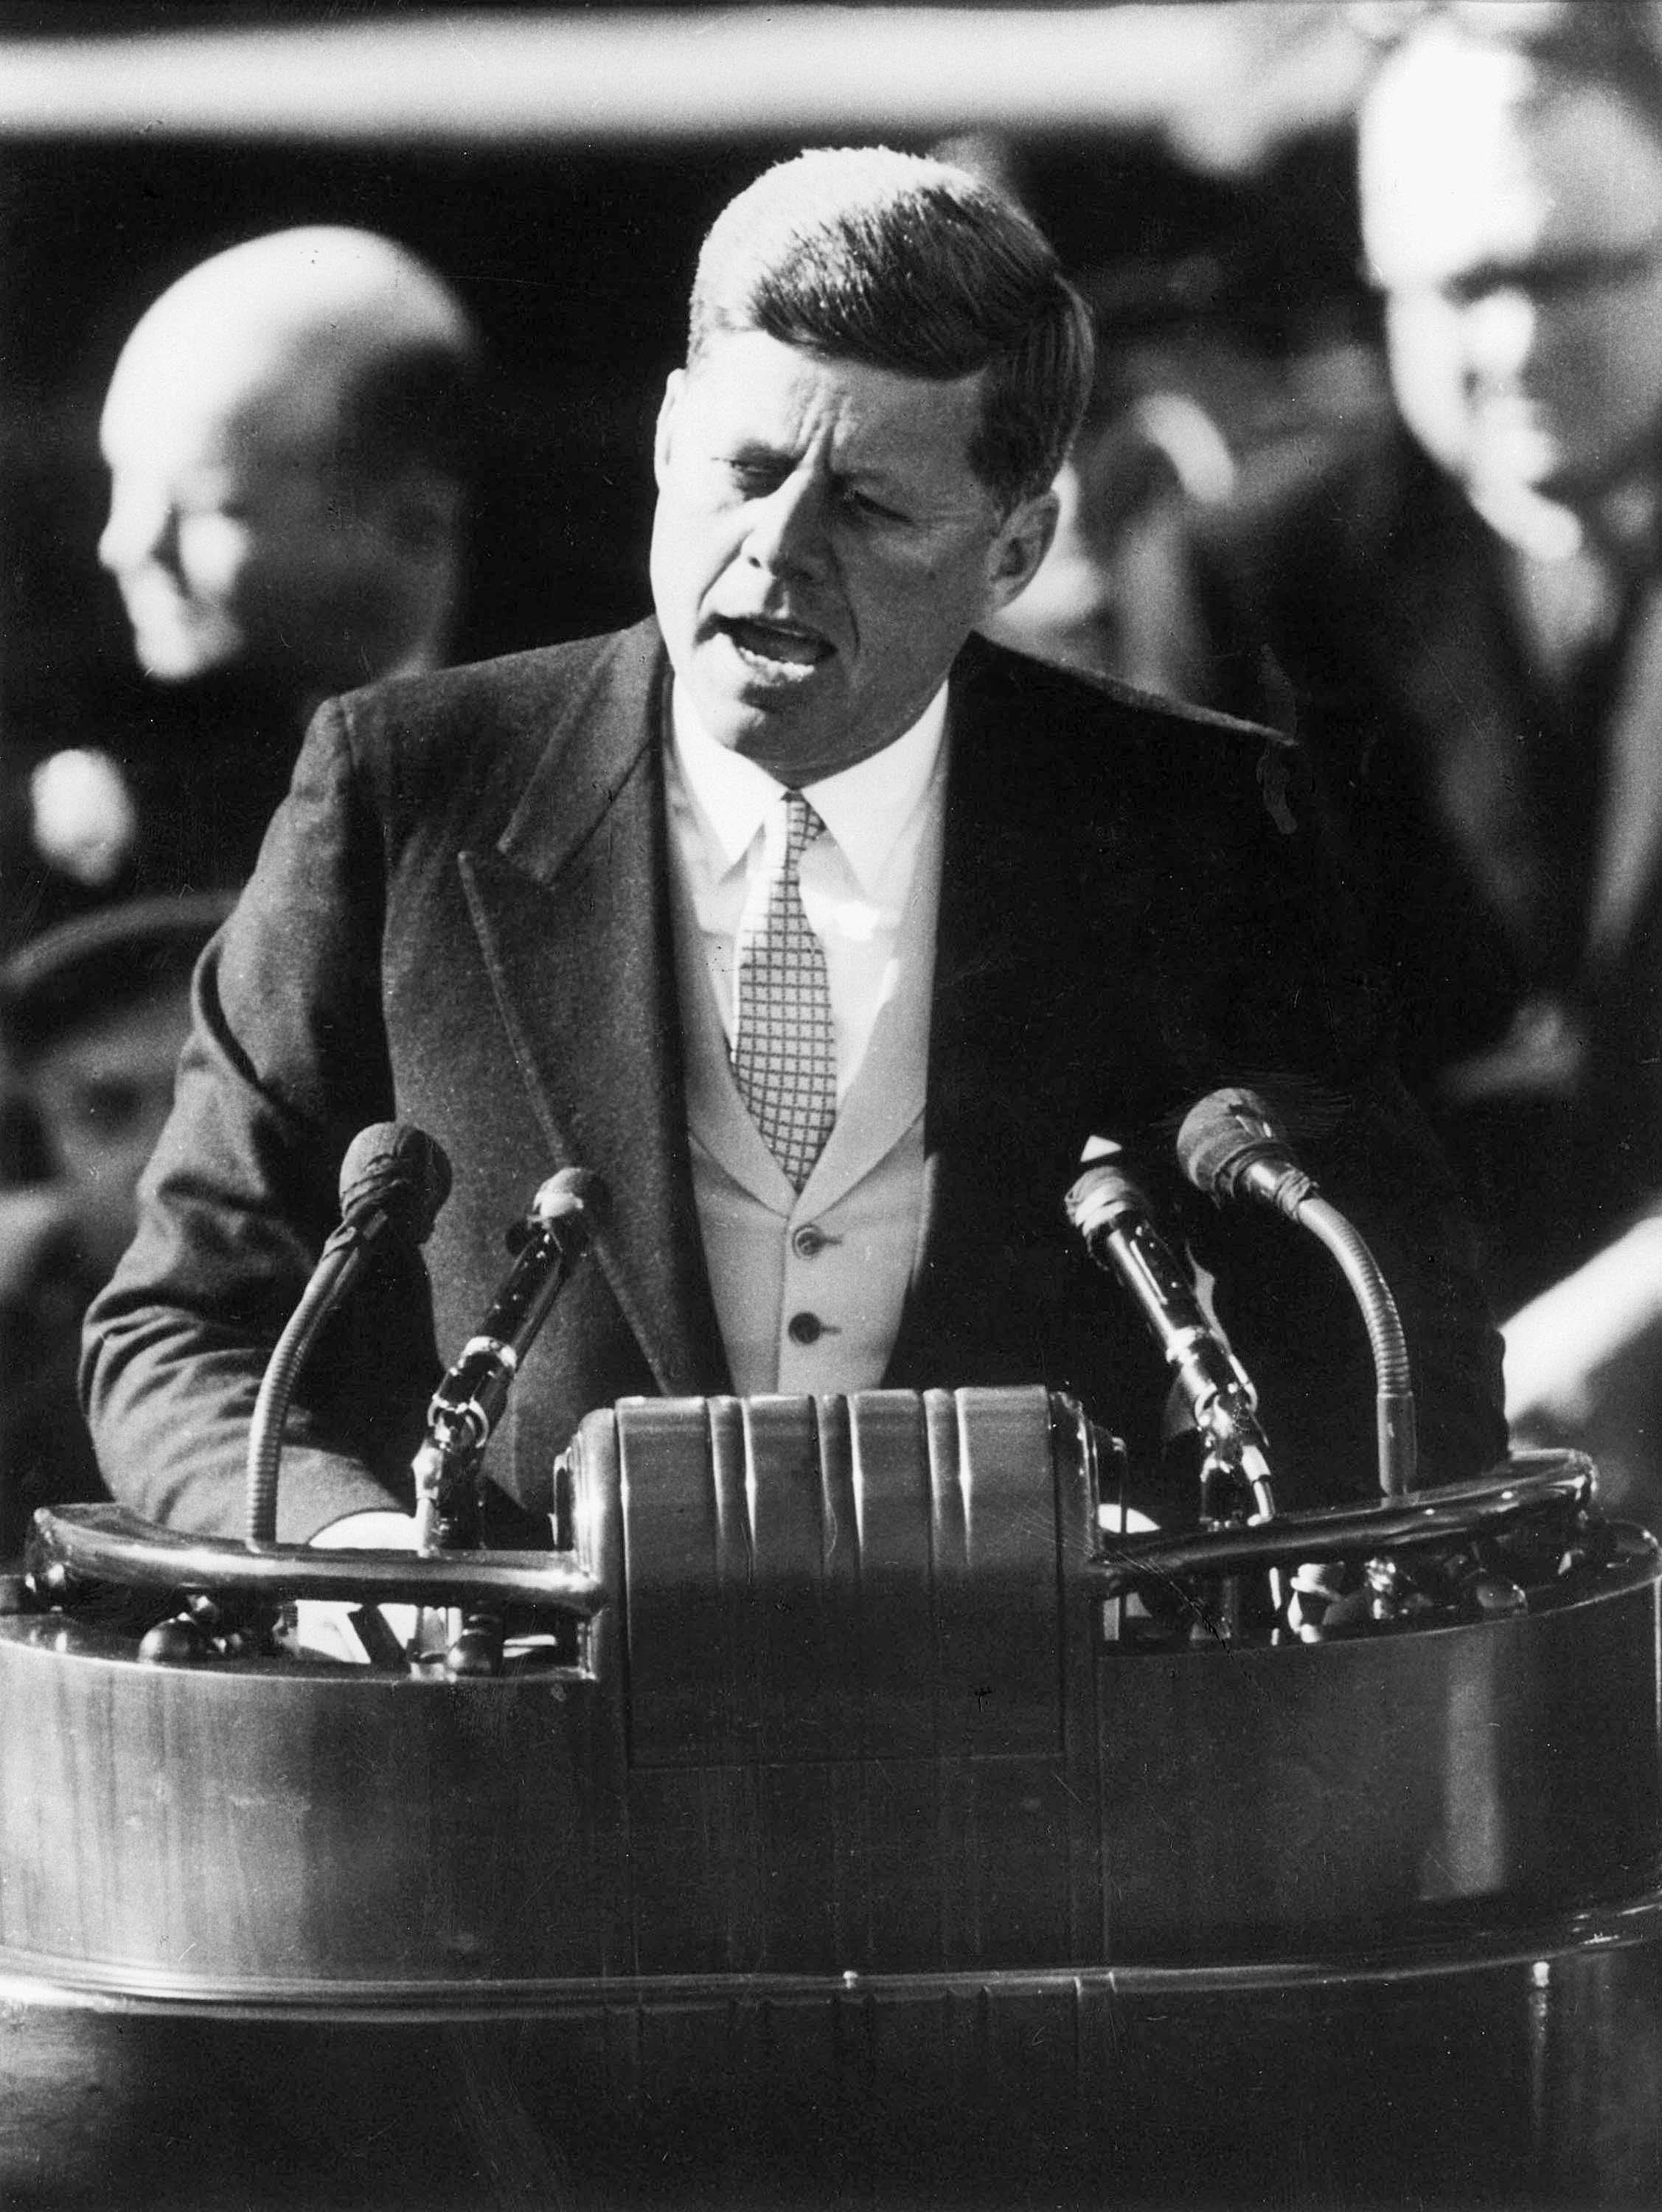 President John F. Kennedy delivers his inaugural address after taking the oath of office at the Capitol in Washington, D.C., in this Jan. 20, 1961 file photo. While on the campaign trail 50 years ago, he spent a day visiting Elgin and other areas in Kane County.